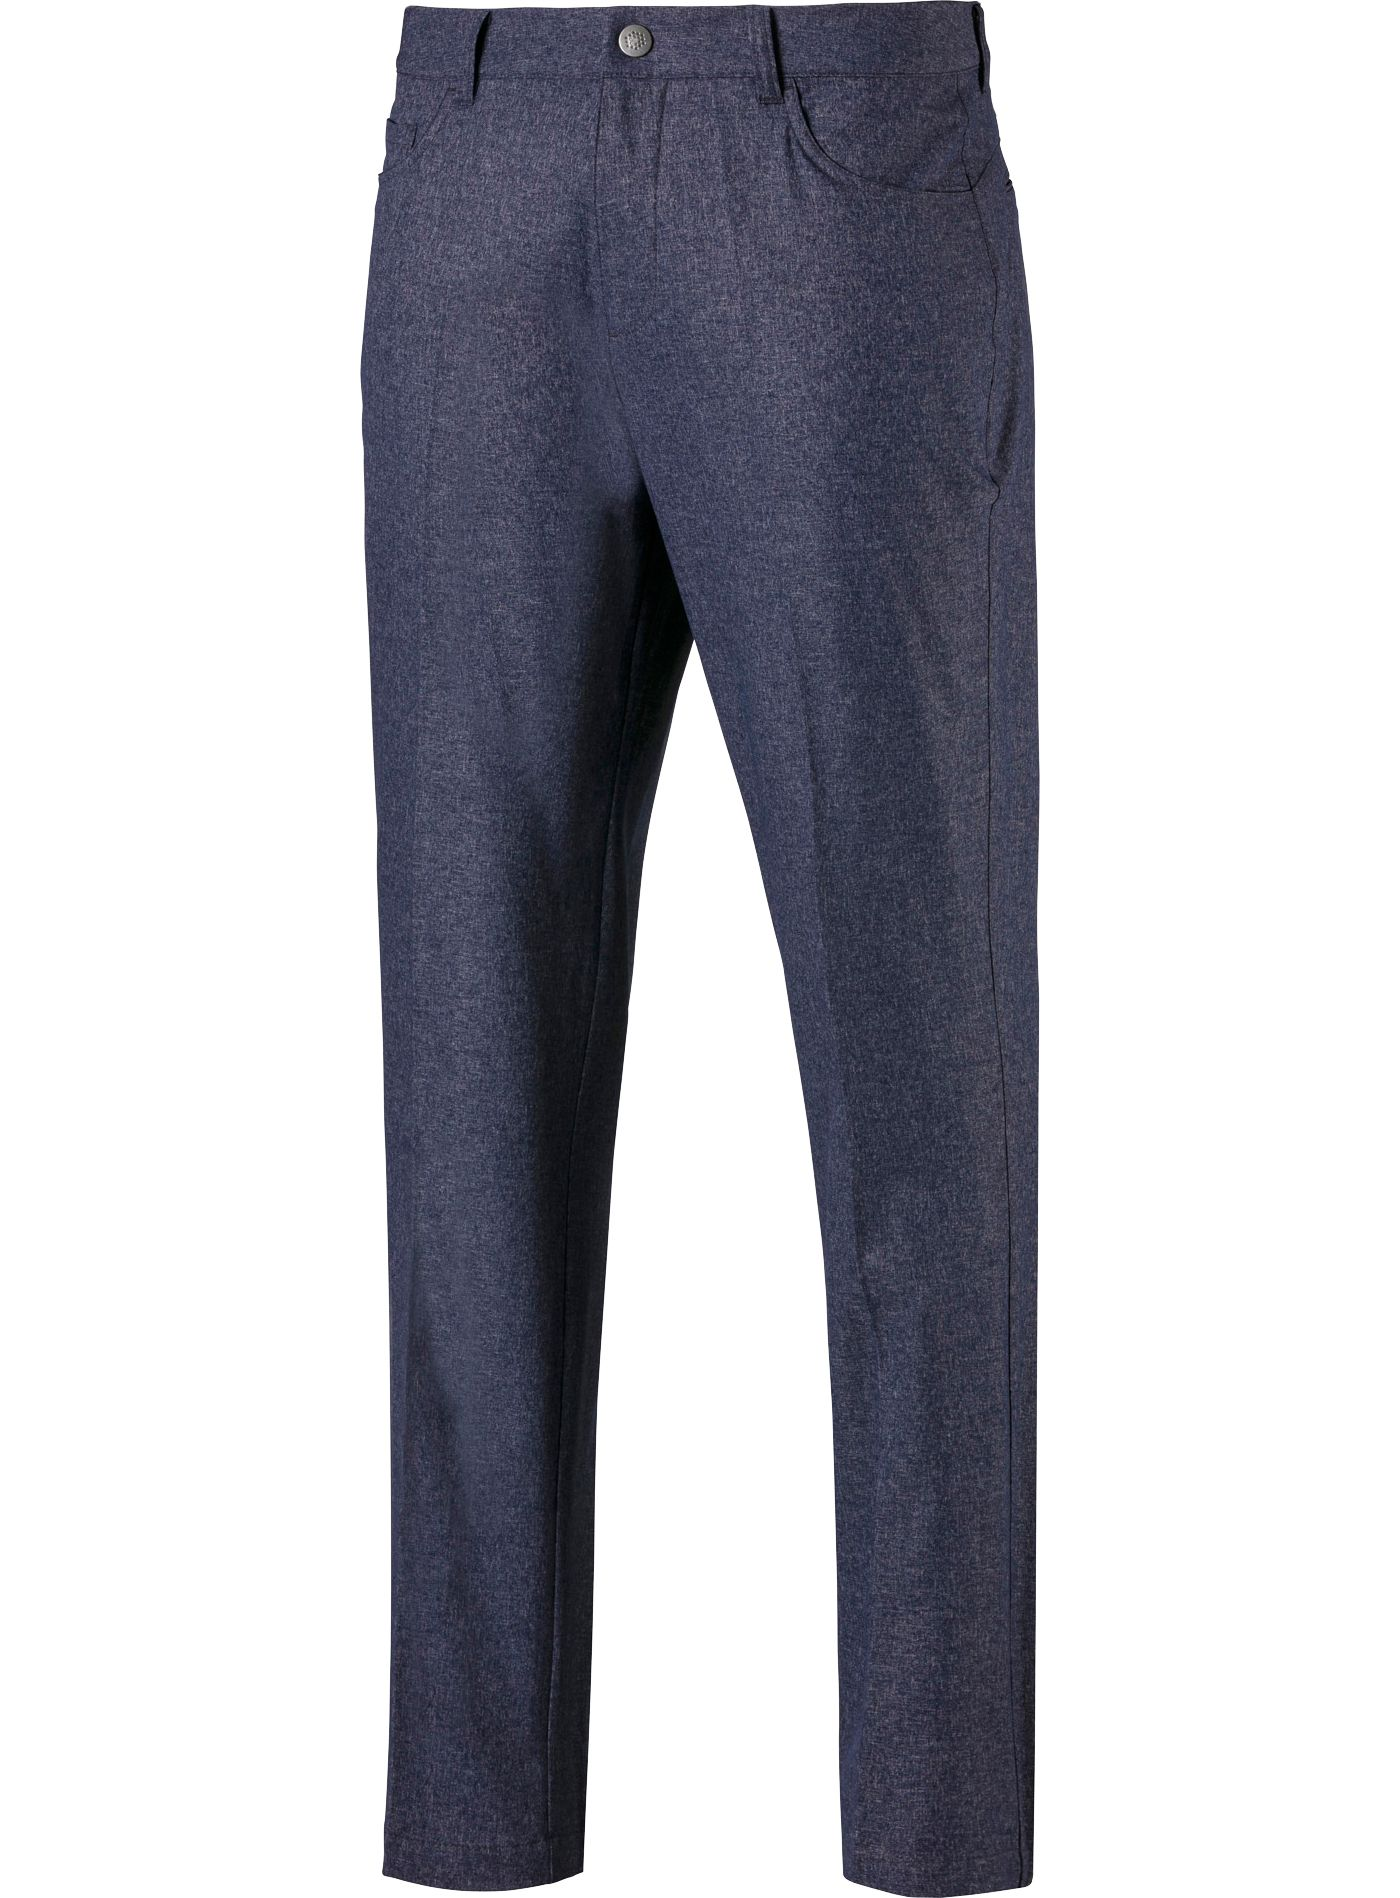 PUMA Men's Jackpot 5 Pocket Heather Golf Pants